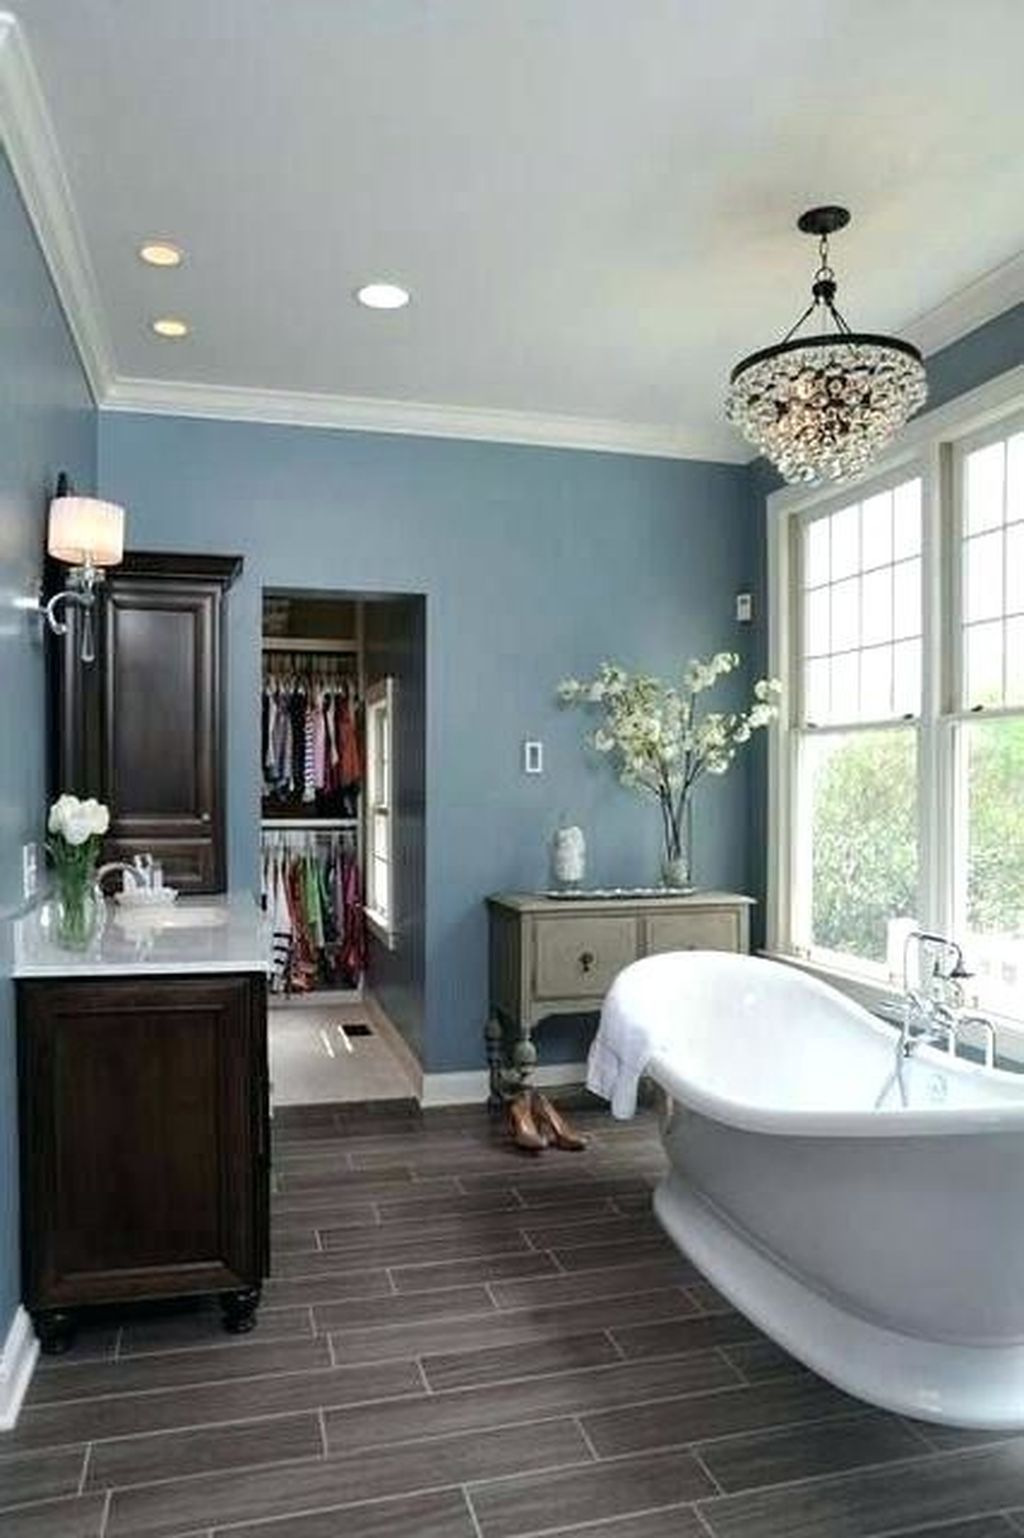 40 Fabulous Grey And Blue Bathroom Design Ideas | Gray and ...